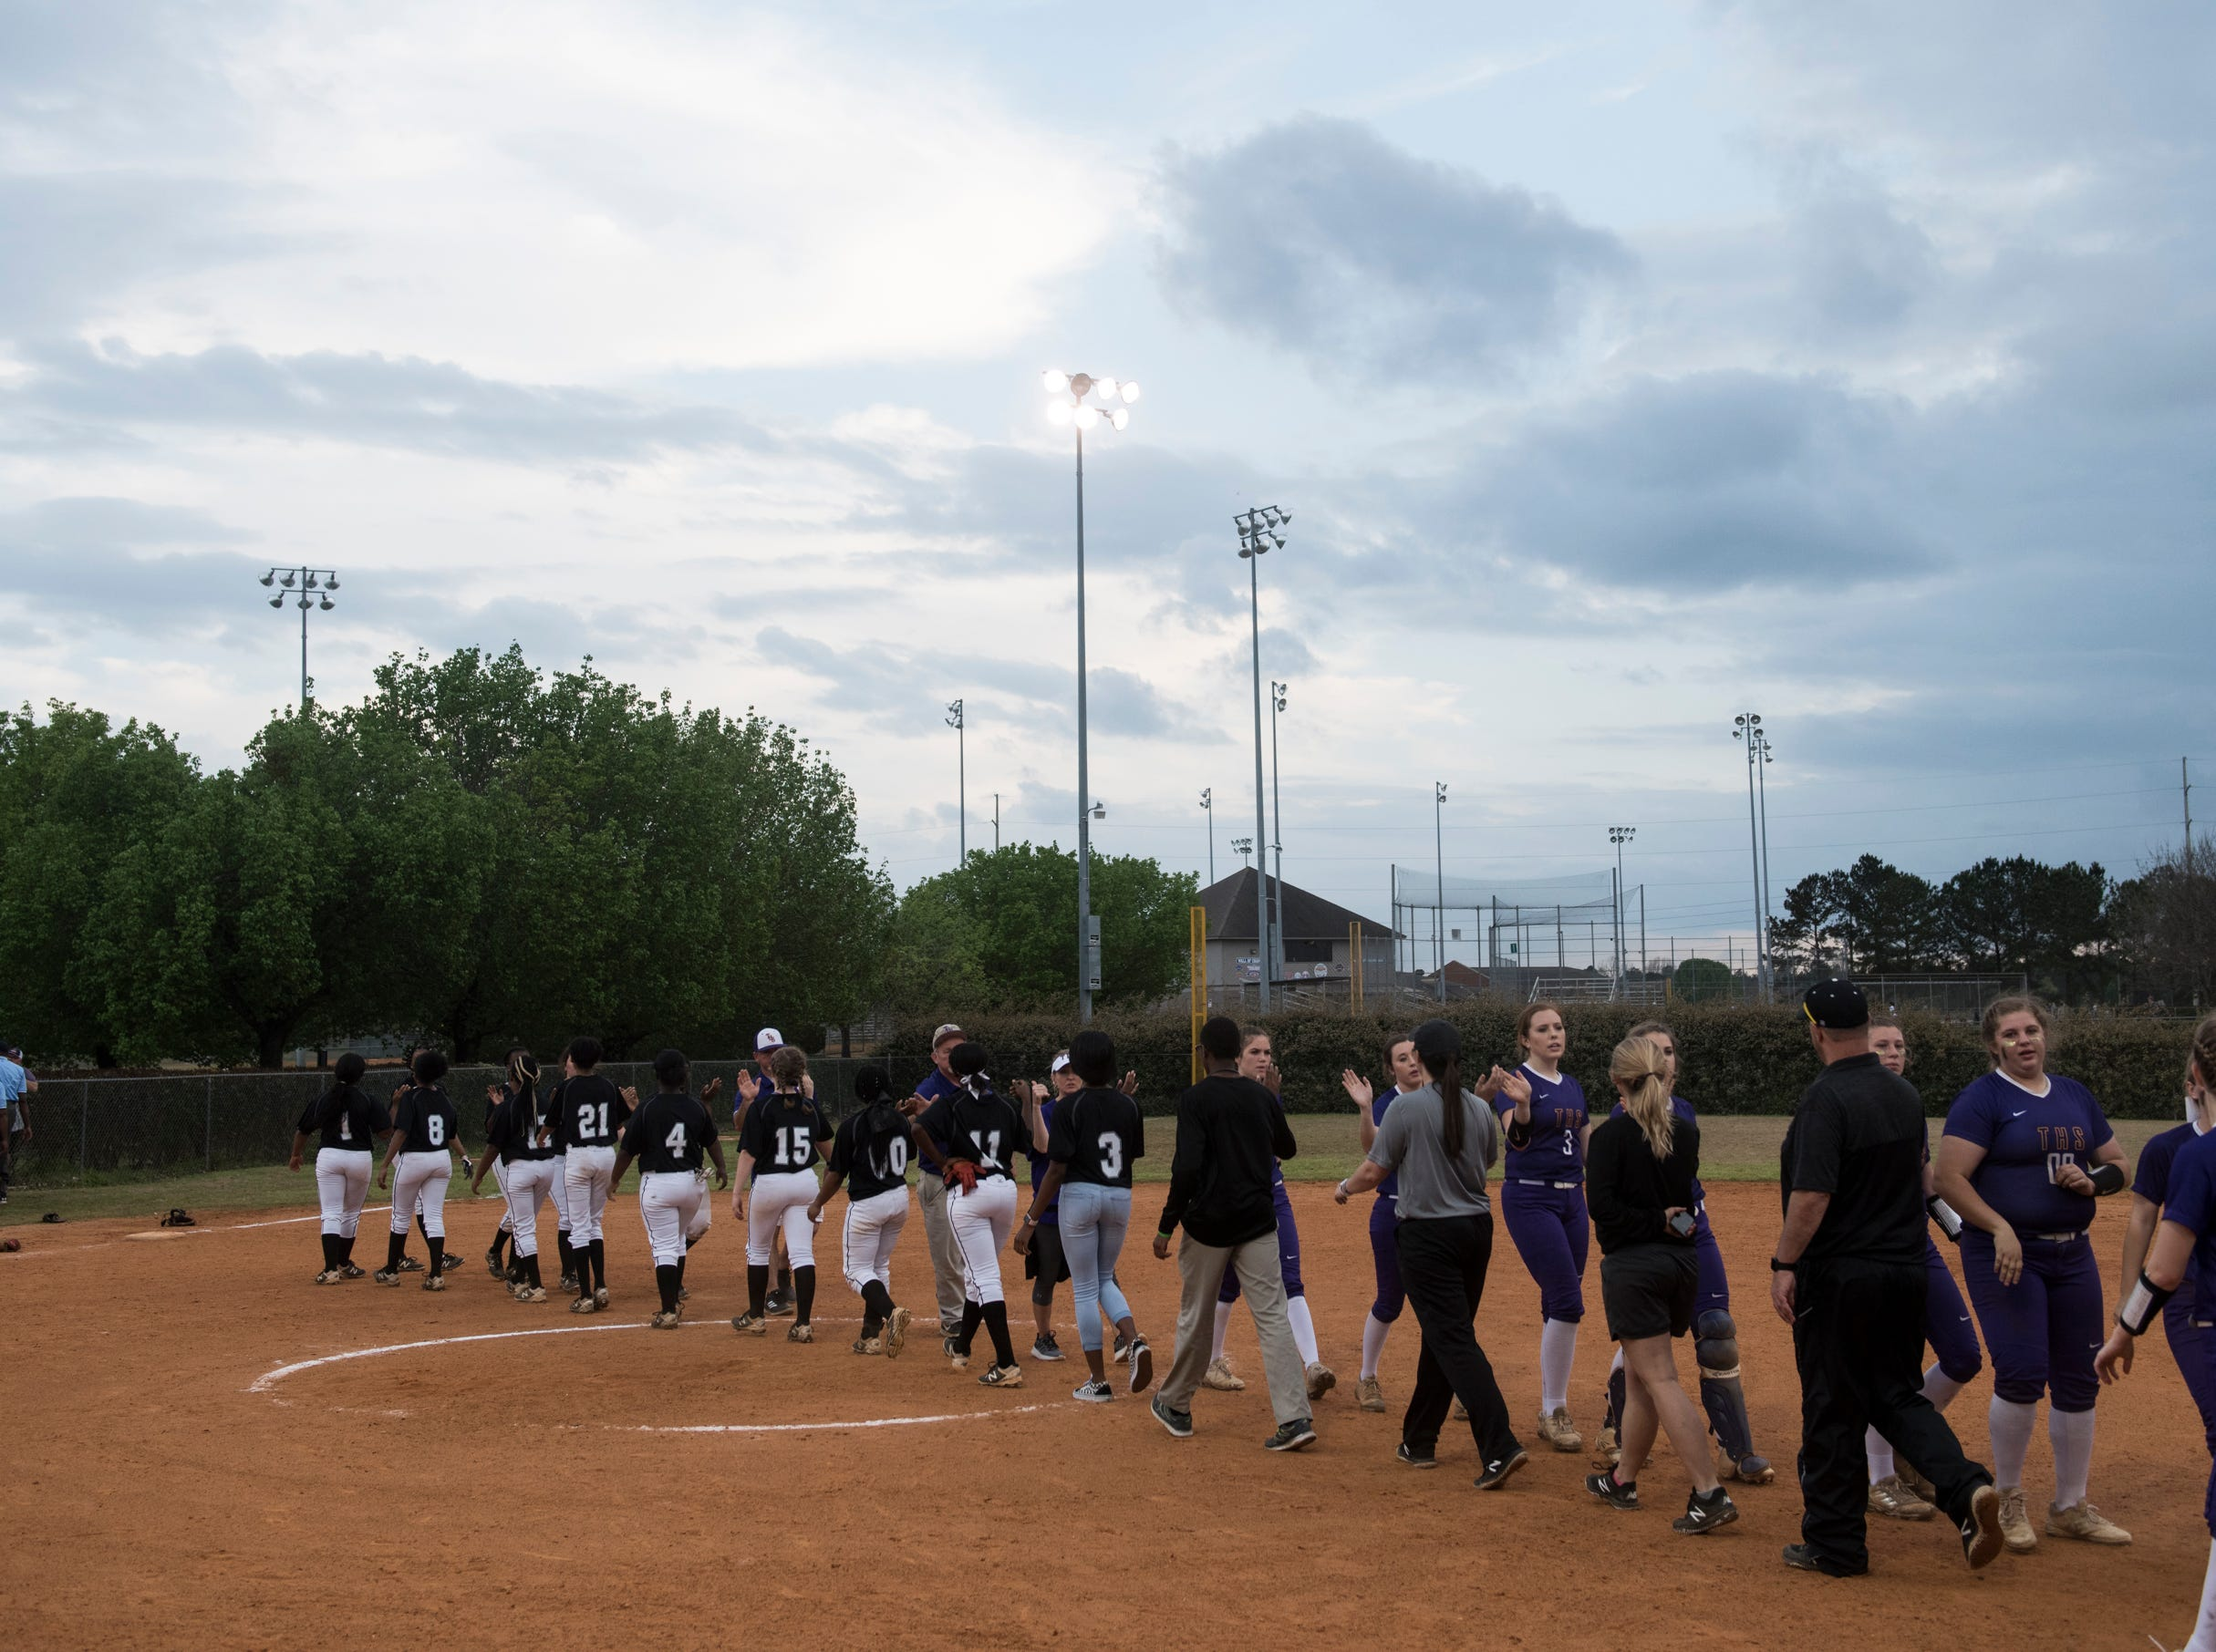 Brew Tech and Tallassee shake hands after the game at Thompson Park in Montgomery, Ala., on Thursday, March 14, 2019. Tallassee defeated Brew Tech 7-0.